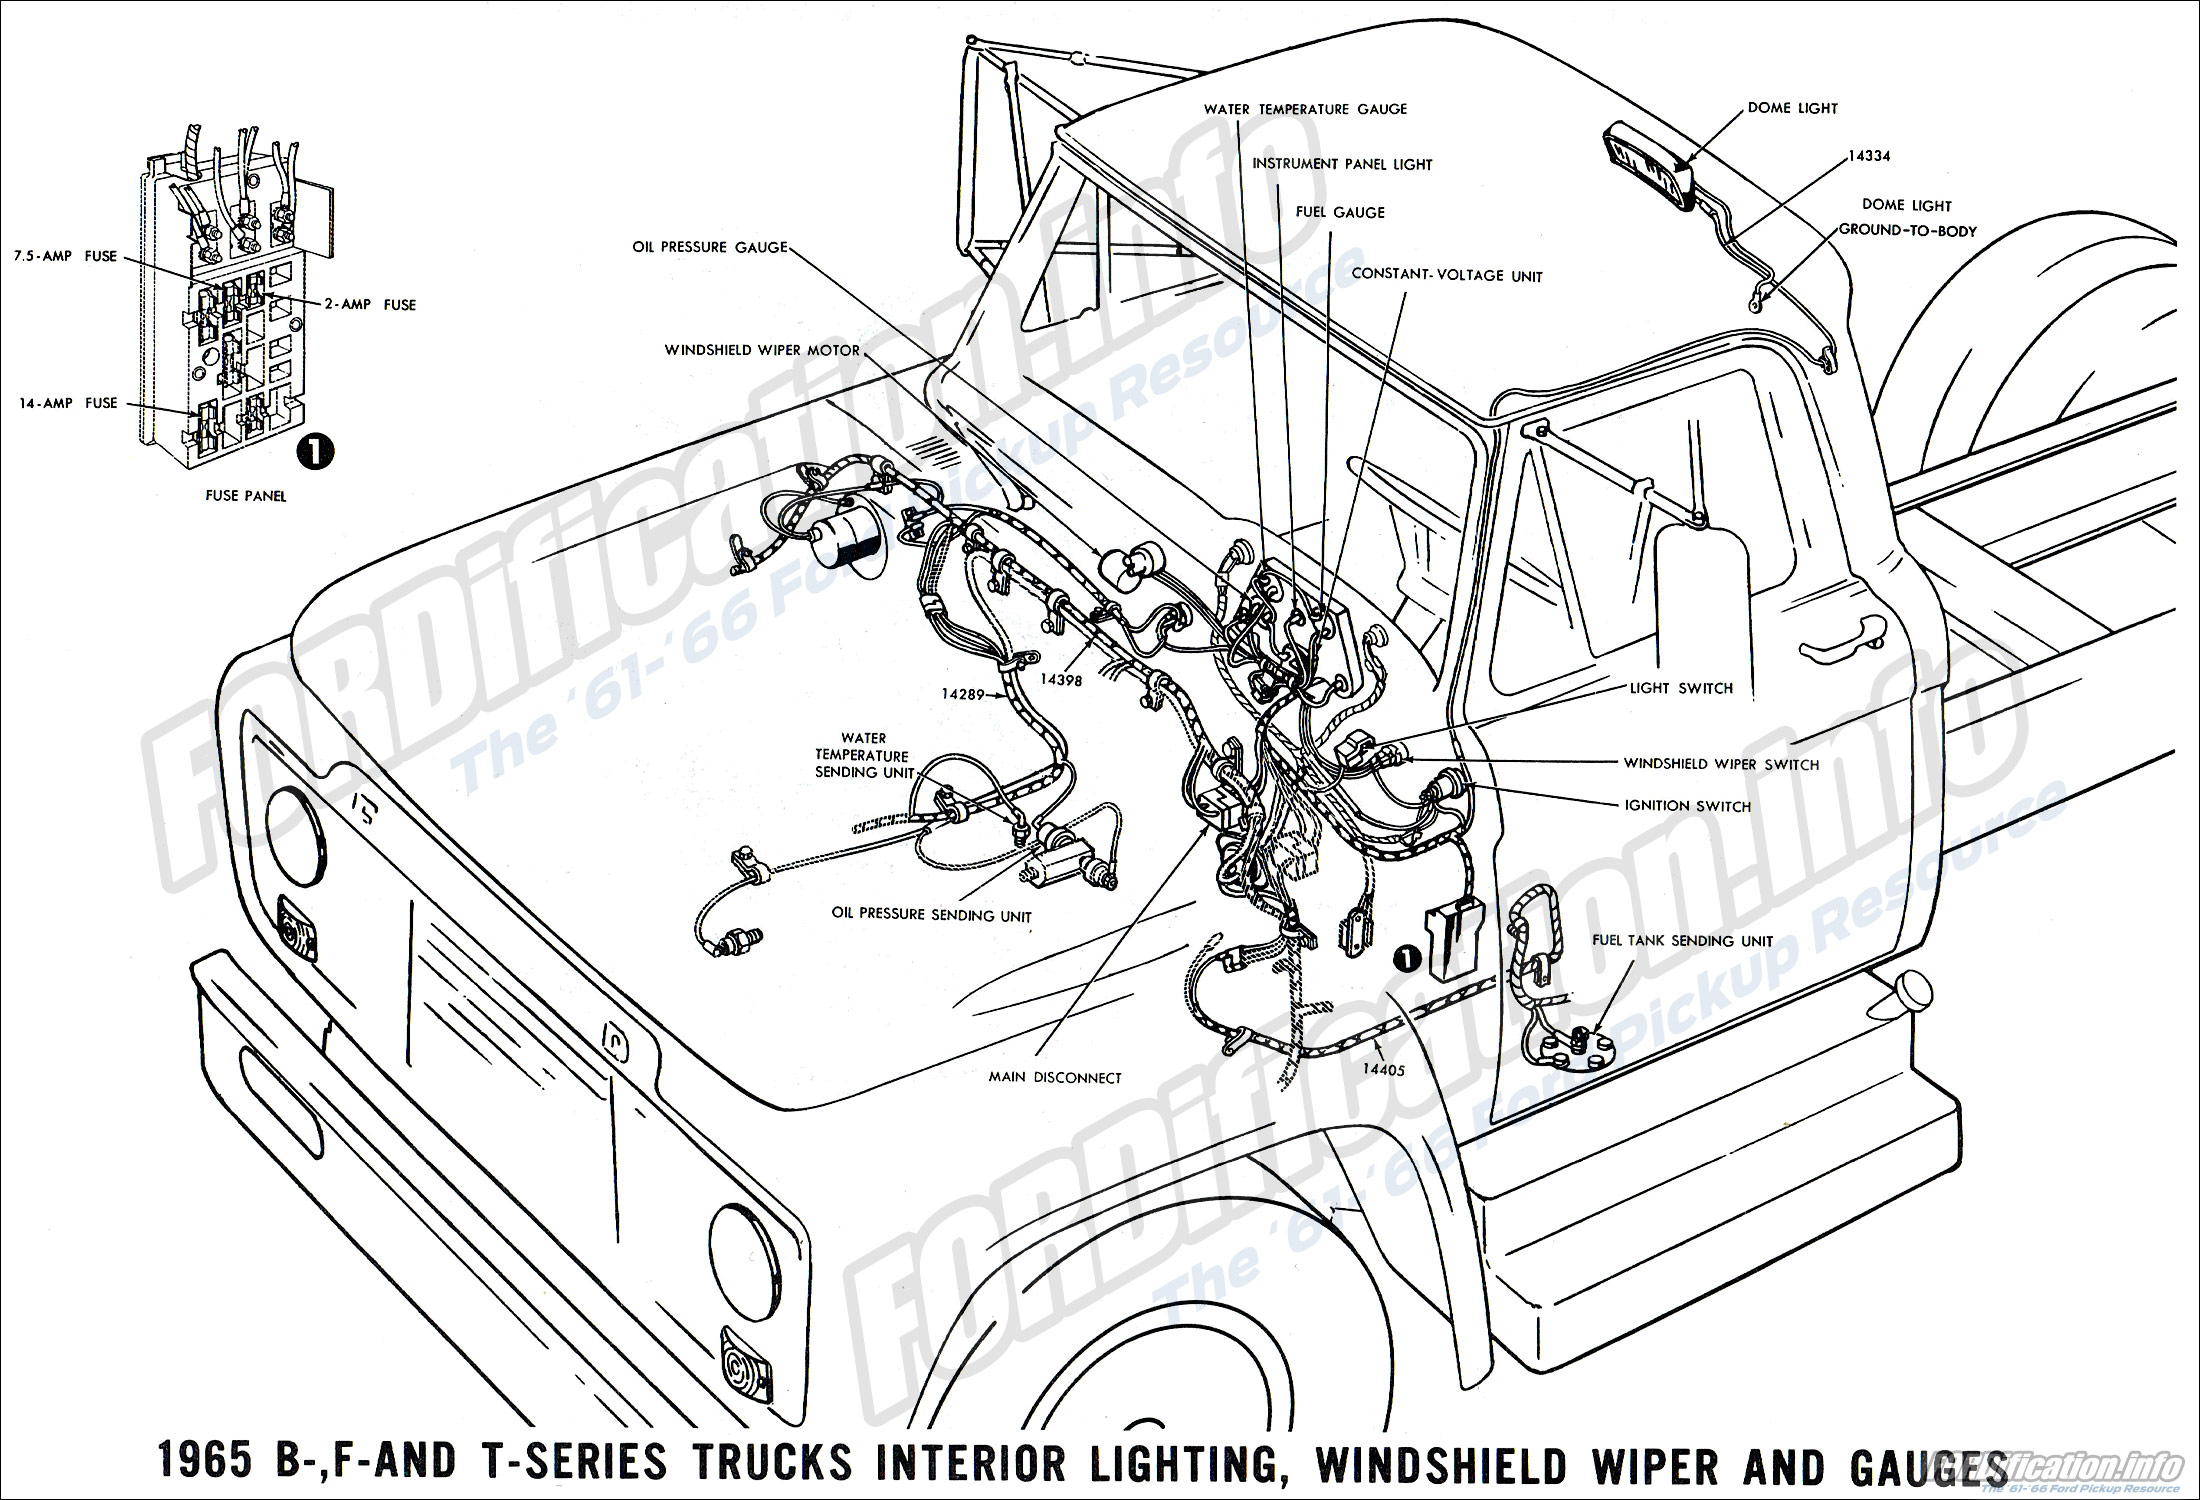 61 Chevy Truck Wiring Diagram List Of Schematic Circuit For 1961 C10 Apache Images Gallery 1965 Ford F100 Ignition Switch Detailed Schematics Rh Politicallyofftarget Com